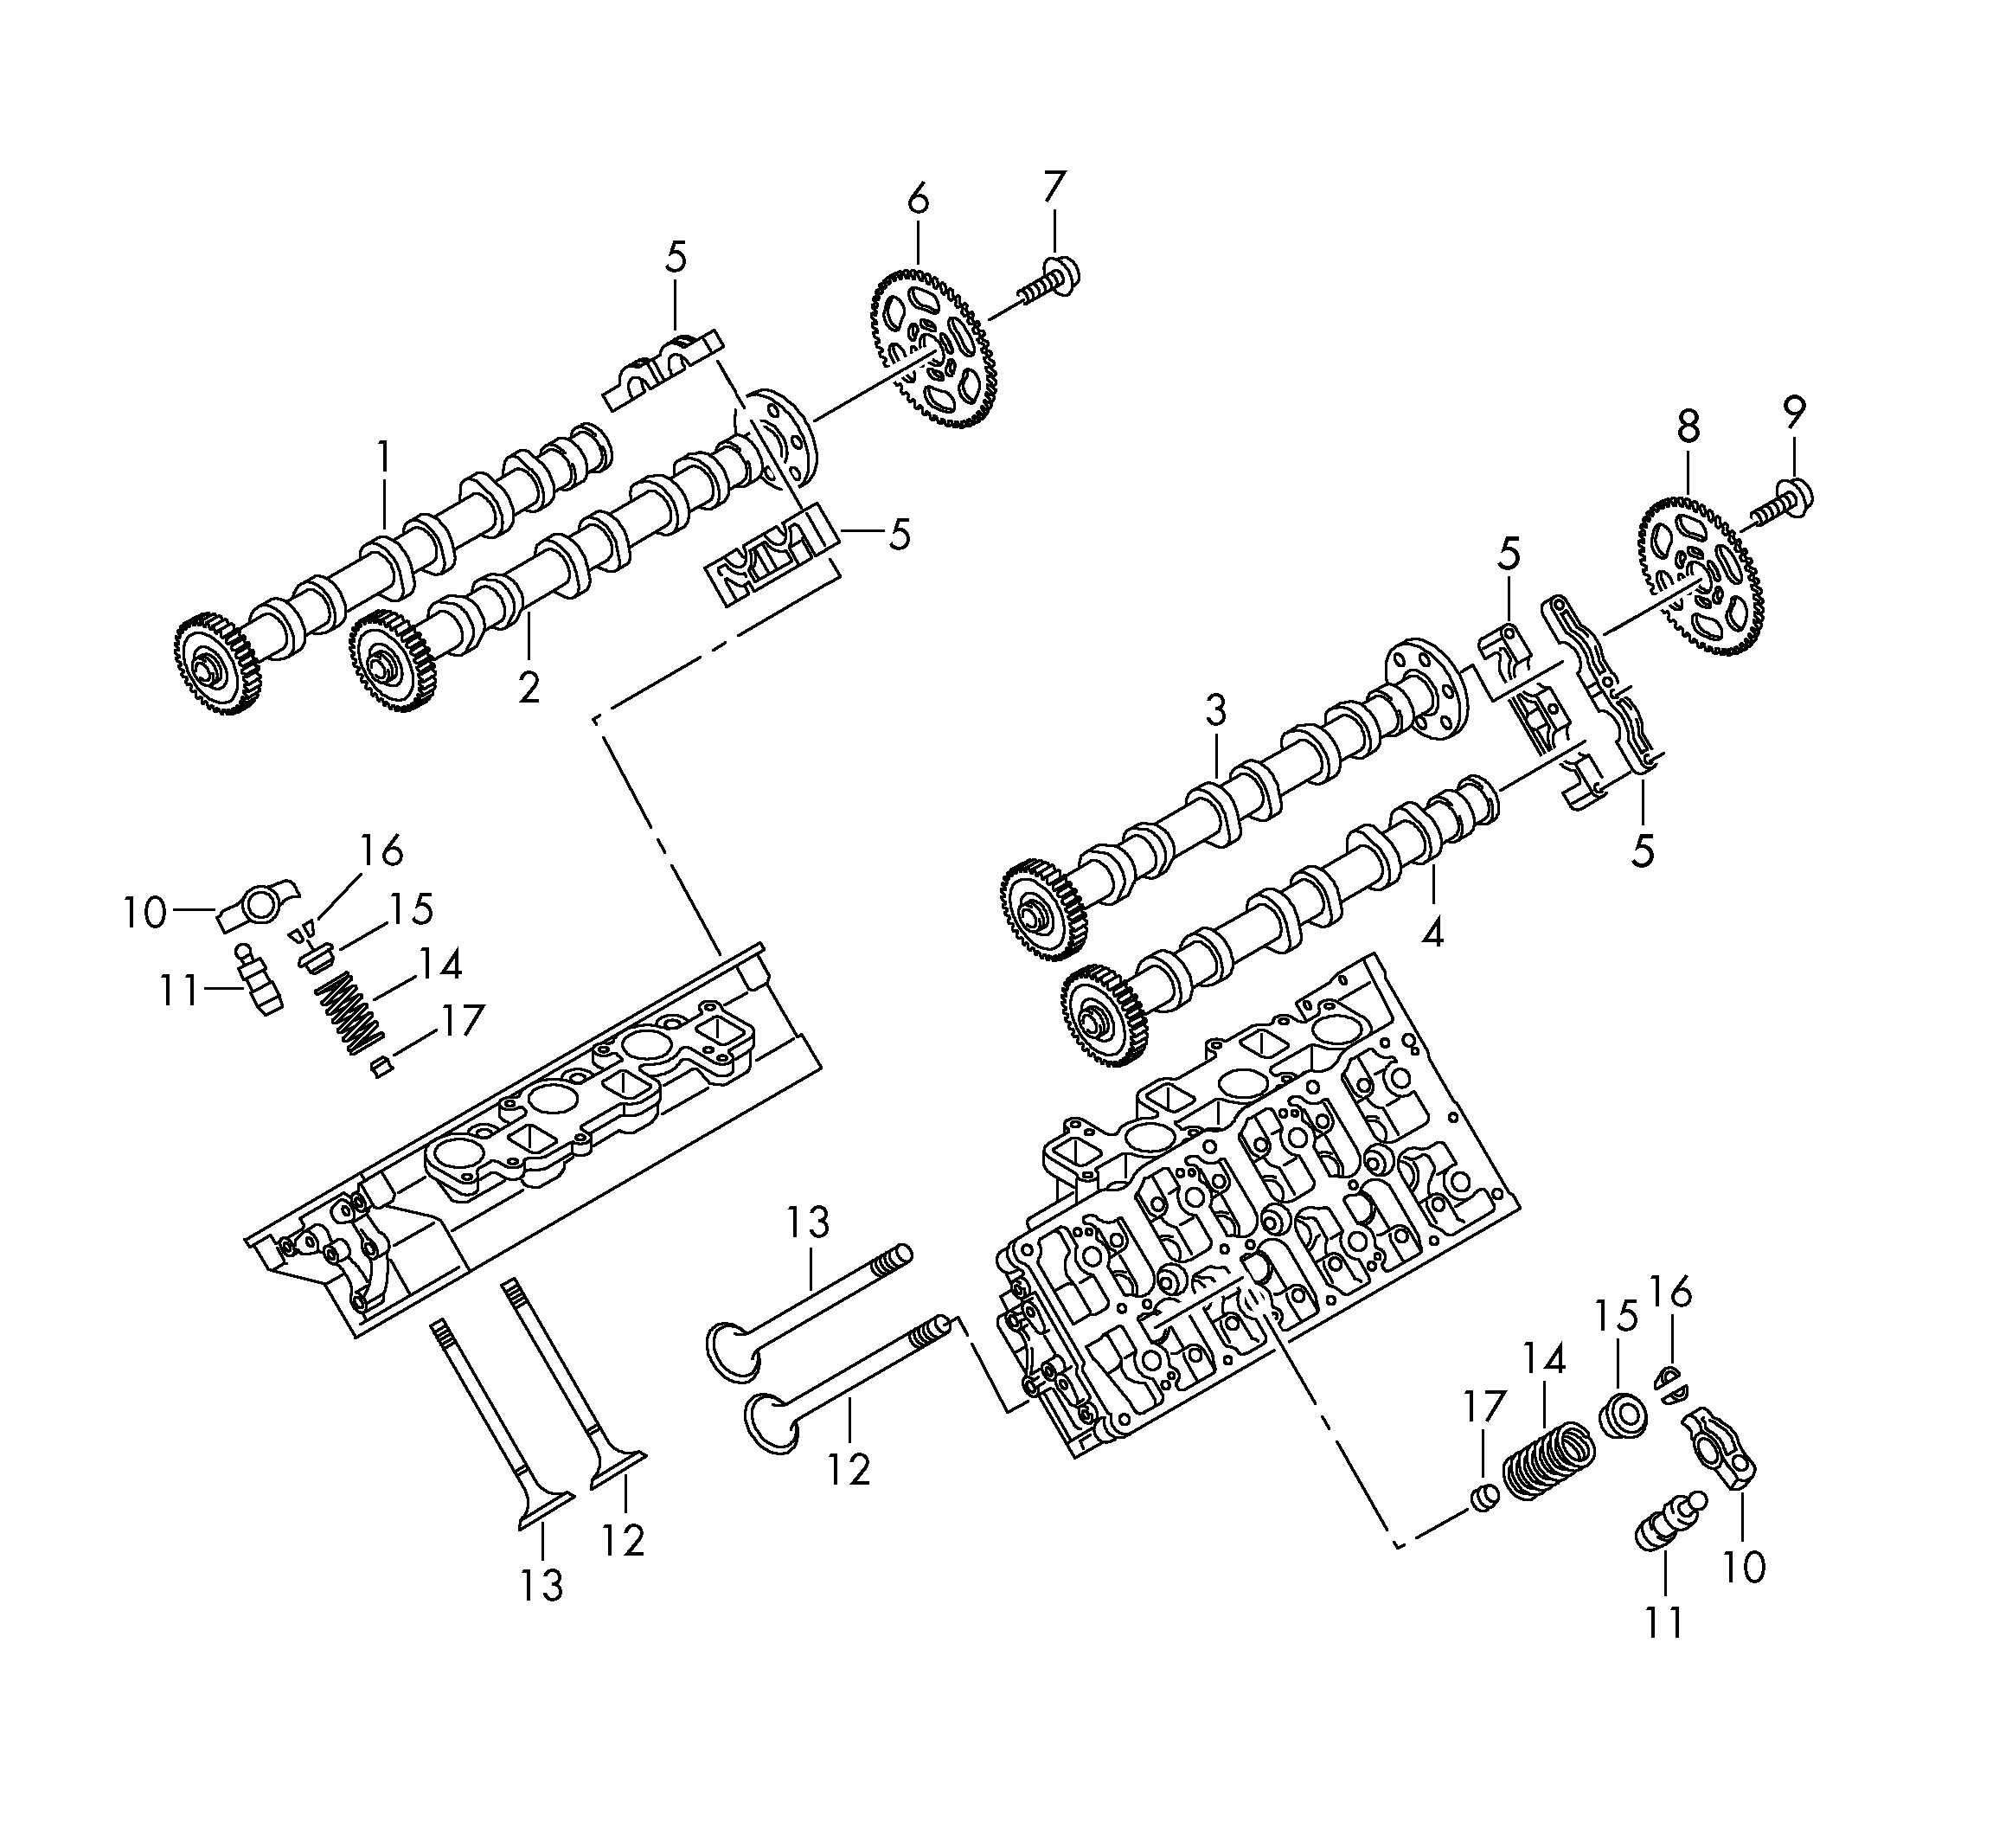 Wiring Diagram For 1980 Vw Rabbit. Diagram. Auto Wiring